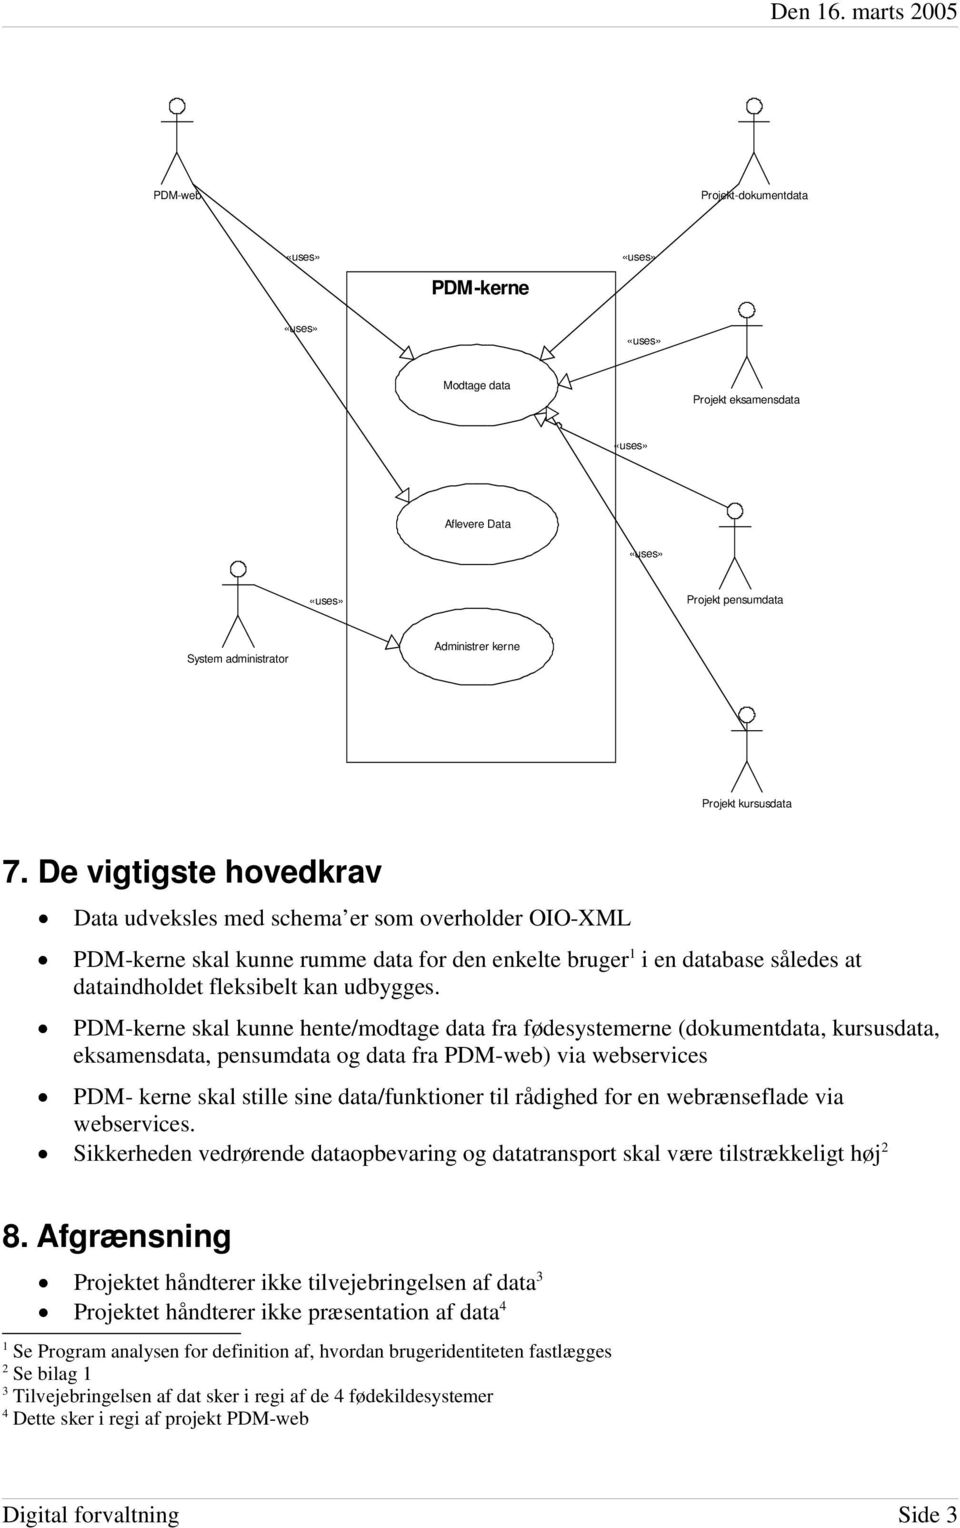 PDM-kerne skal kunne hente/modtage data fra fødesystemerne (dokumentdata, kursusdata, eksamensdata, pensumdata og data fra PDM-web) via webservices PDM- kerne skal stille sine data/funktioner til